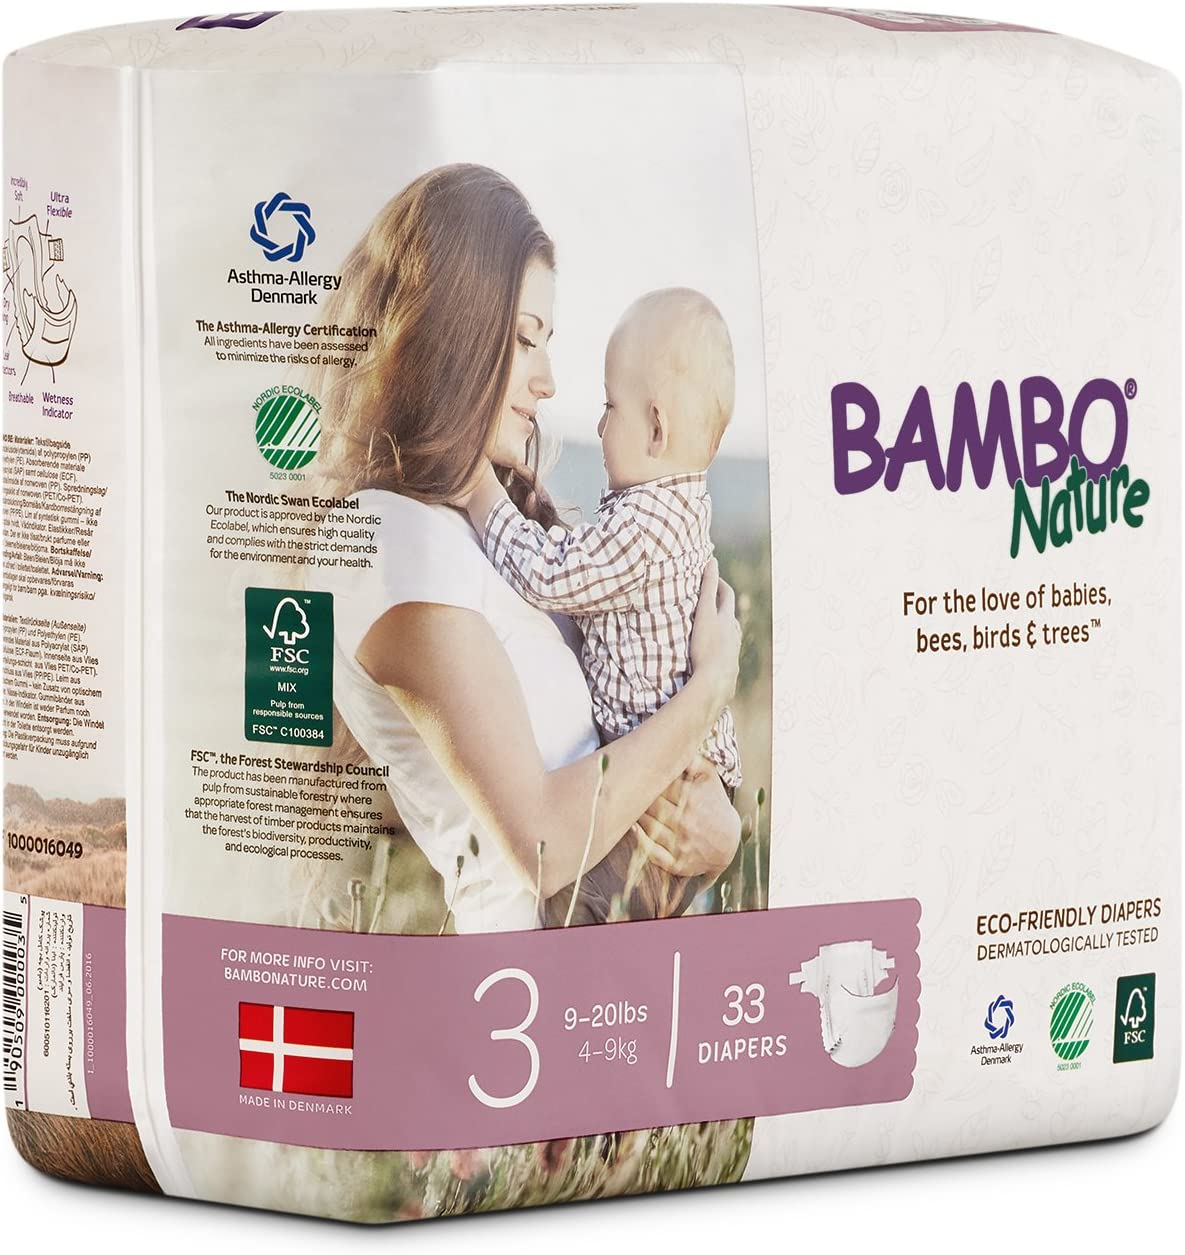 132 Count 6 Packs of 22 Size 6 Bambo Nature Premium Baby Diapers 35-66 lbs